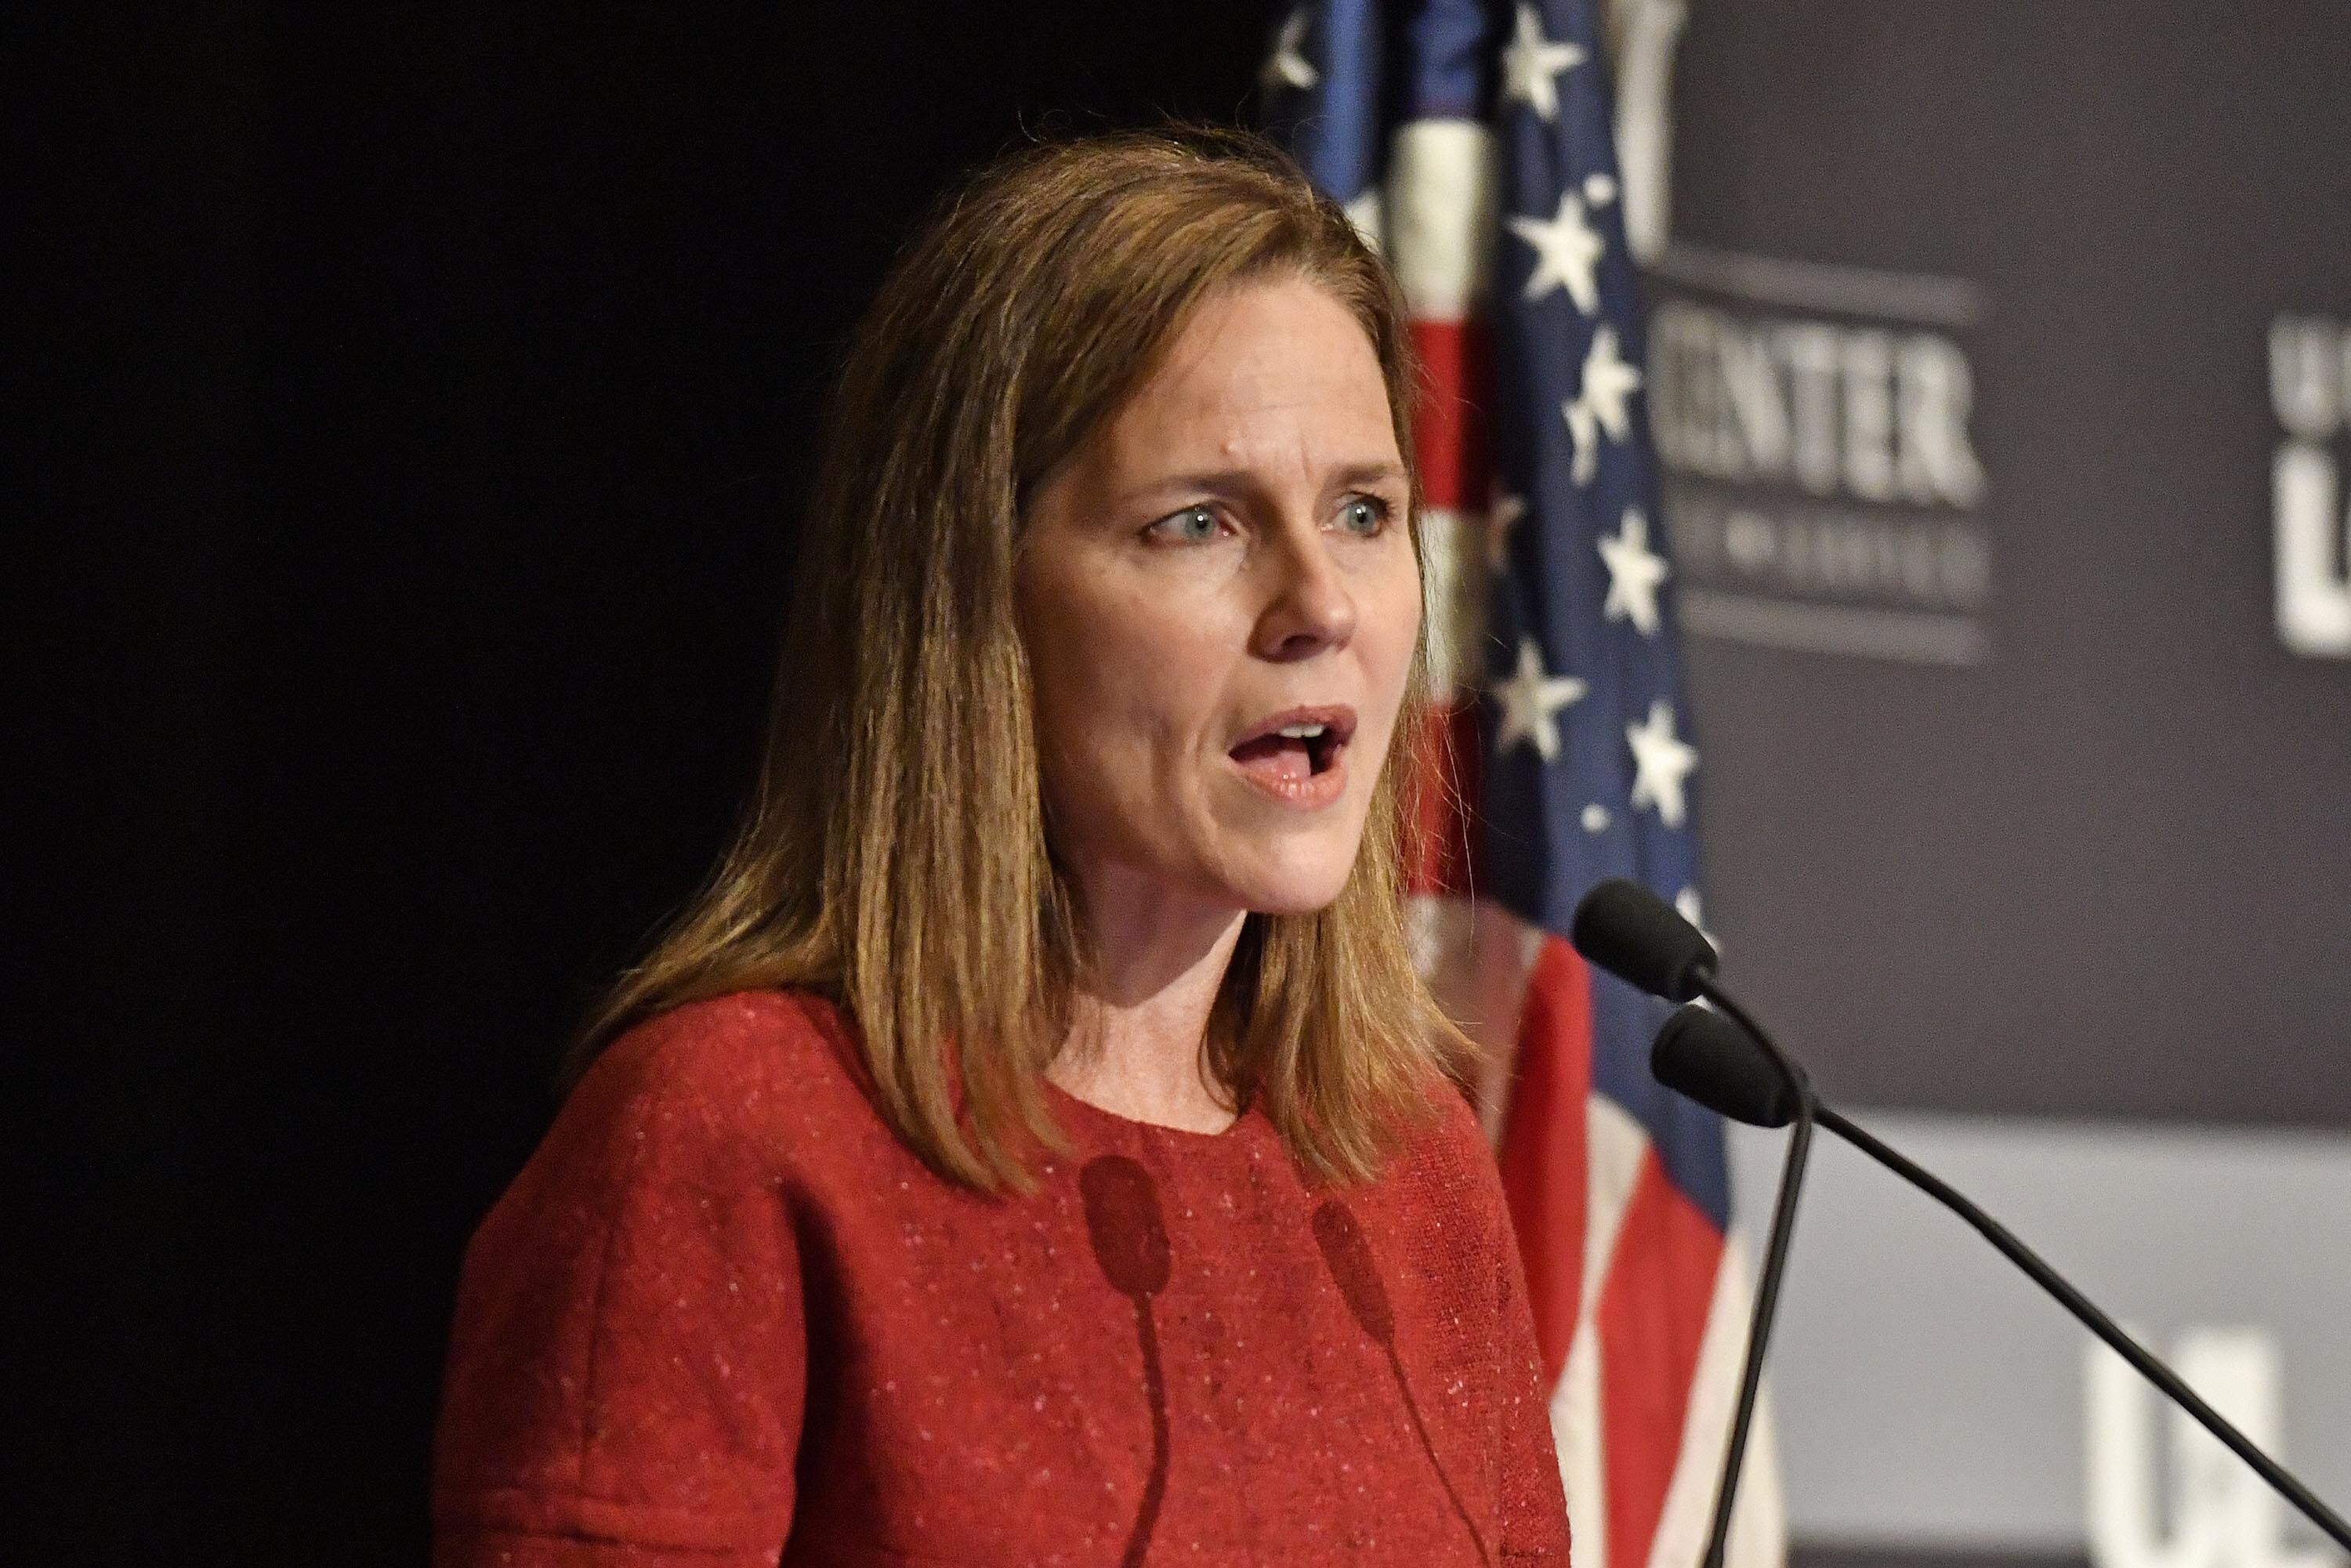 Justice Amy Coney Barrett says Supreme Court is 'not a bunch of partisan hacks'